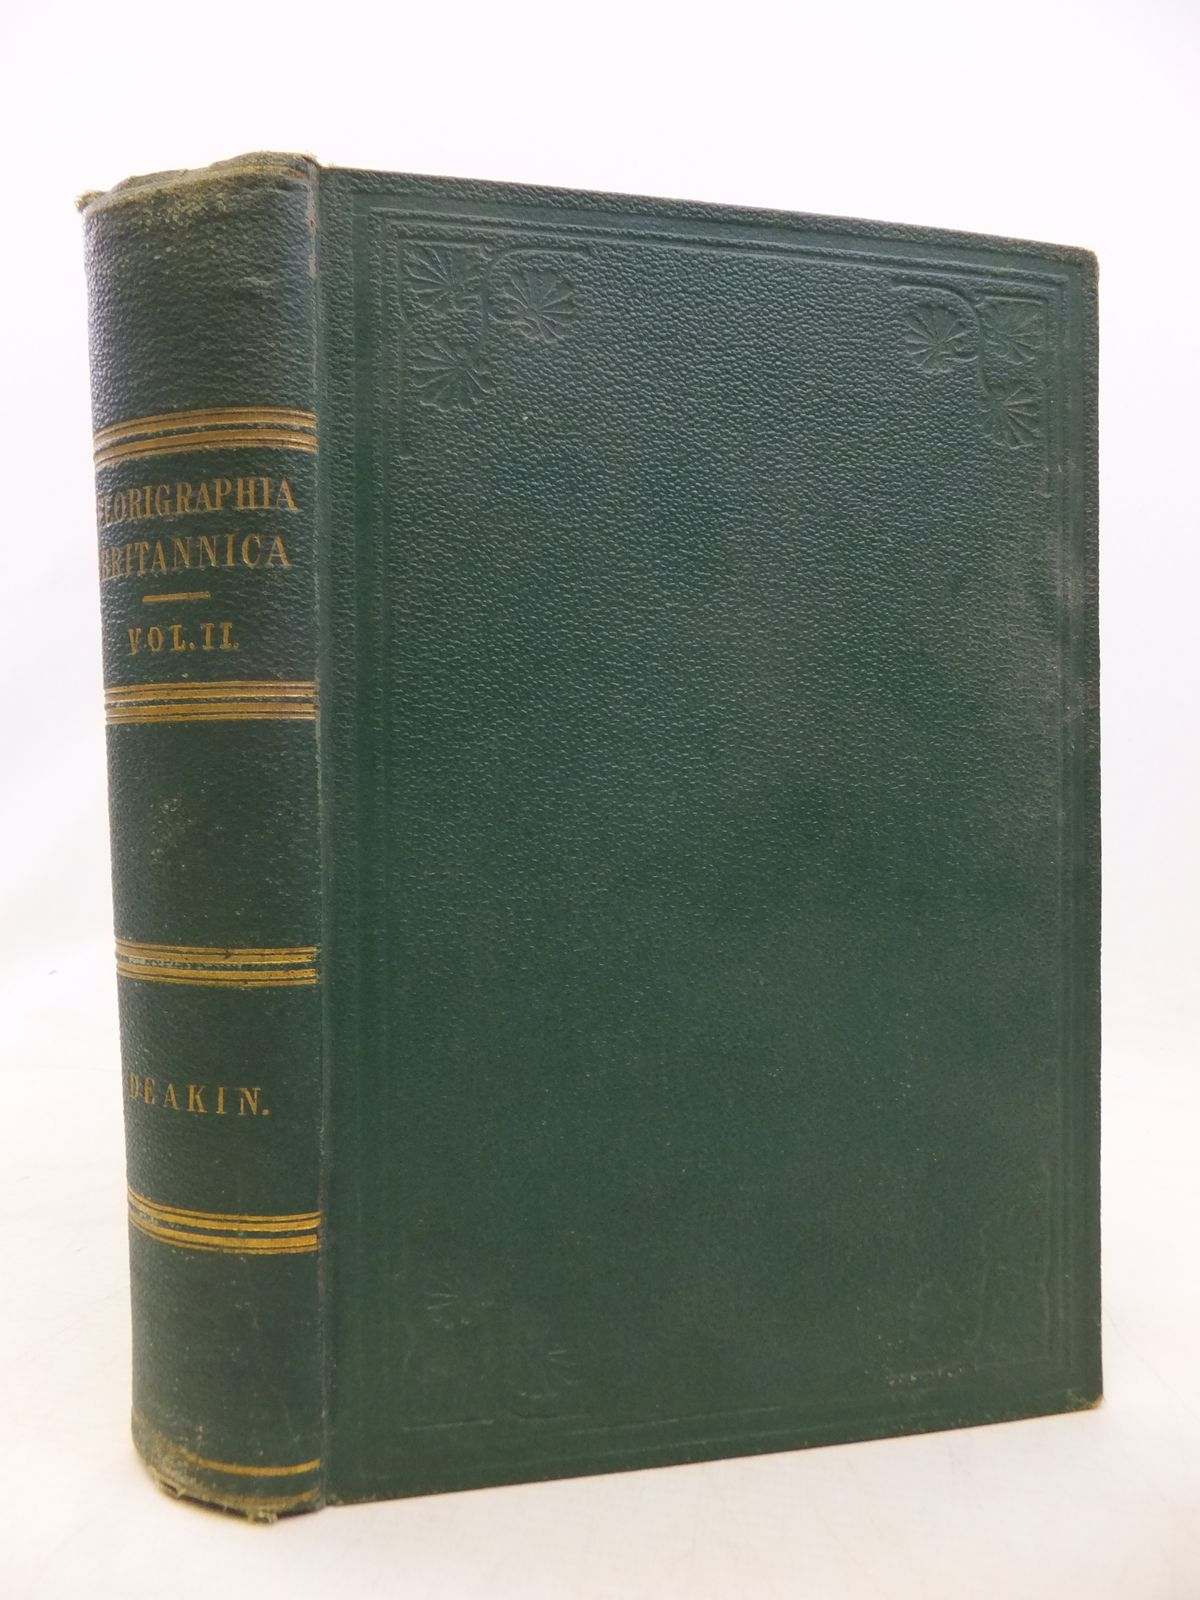 Photo of FLORIGRAPHIA BRITANNICA VOLUME II- Stock Number: 1809153